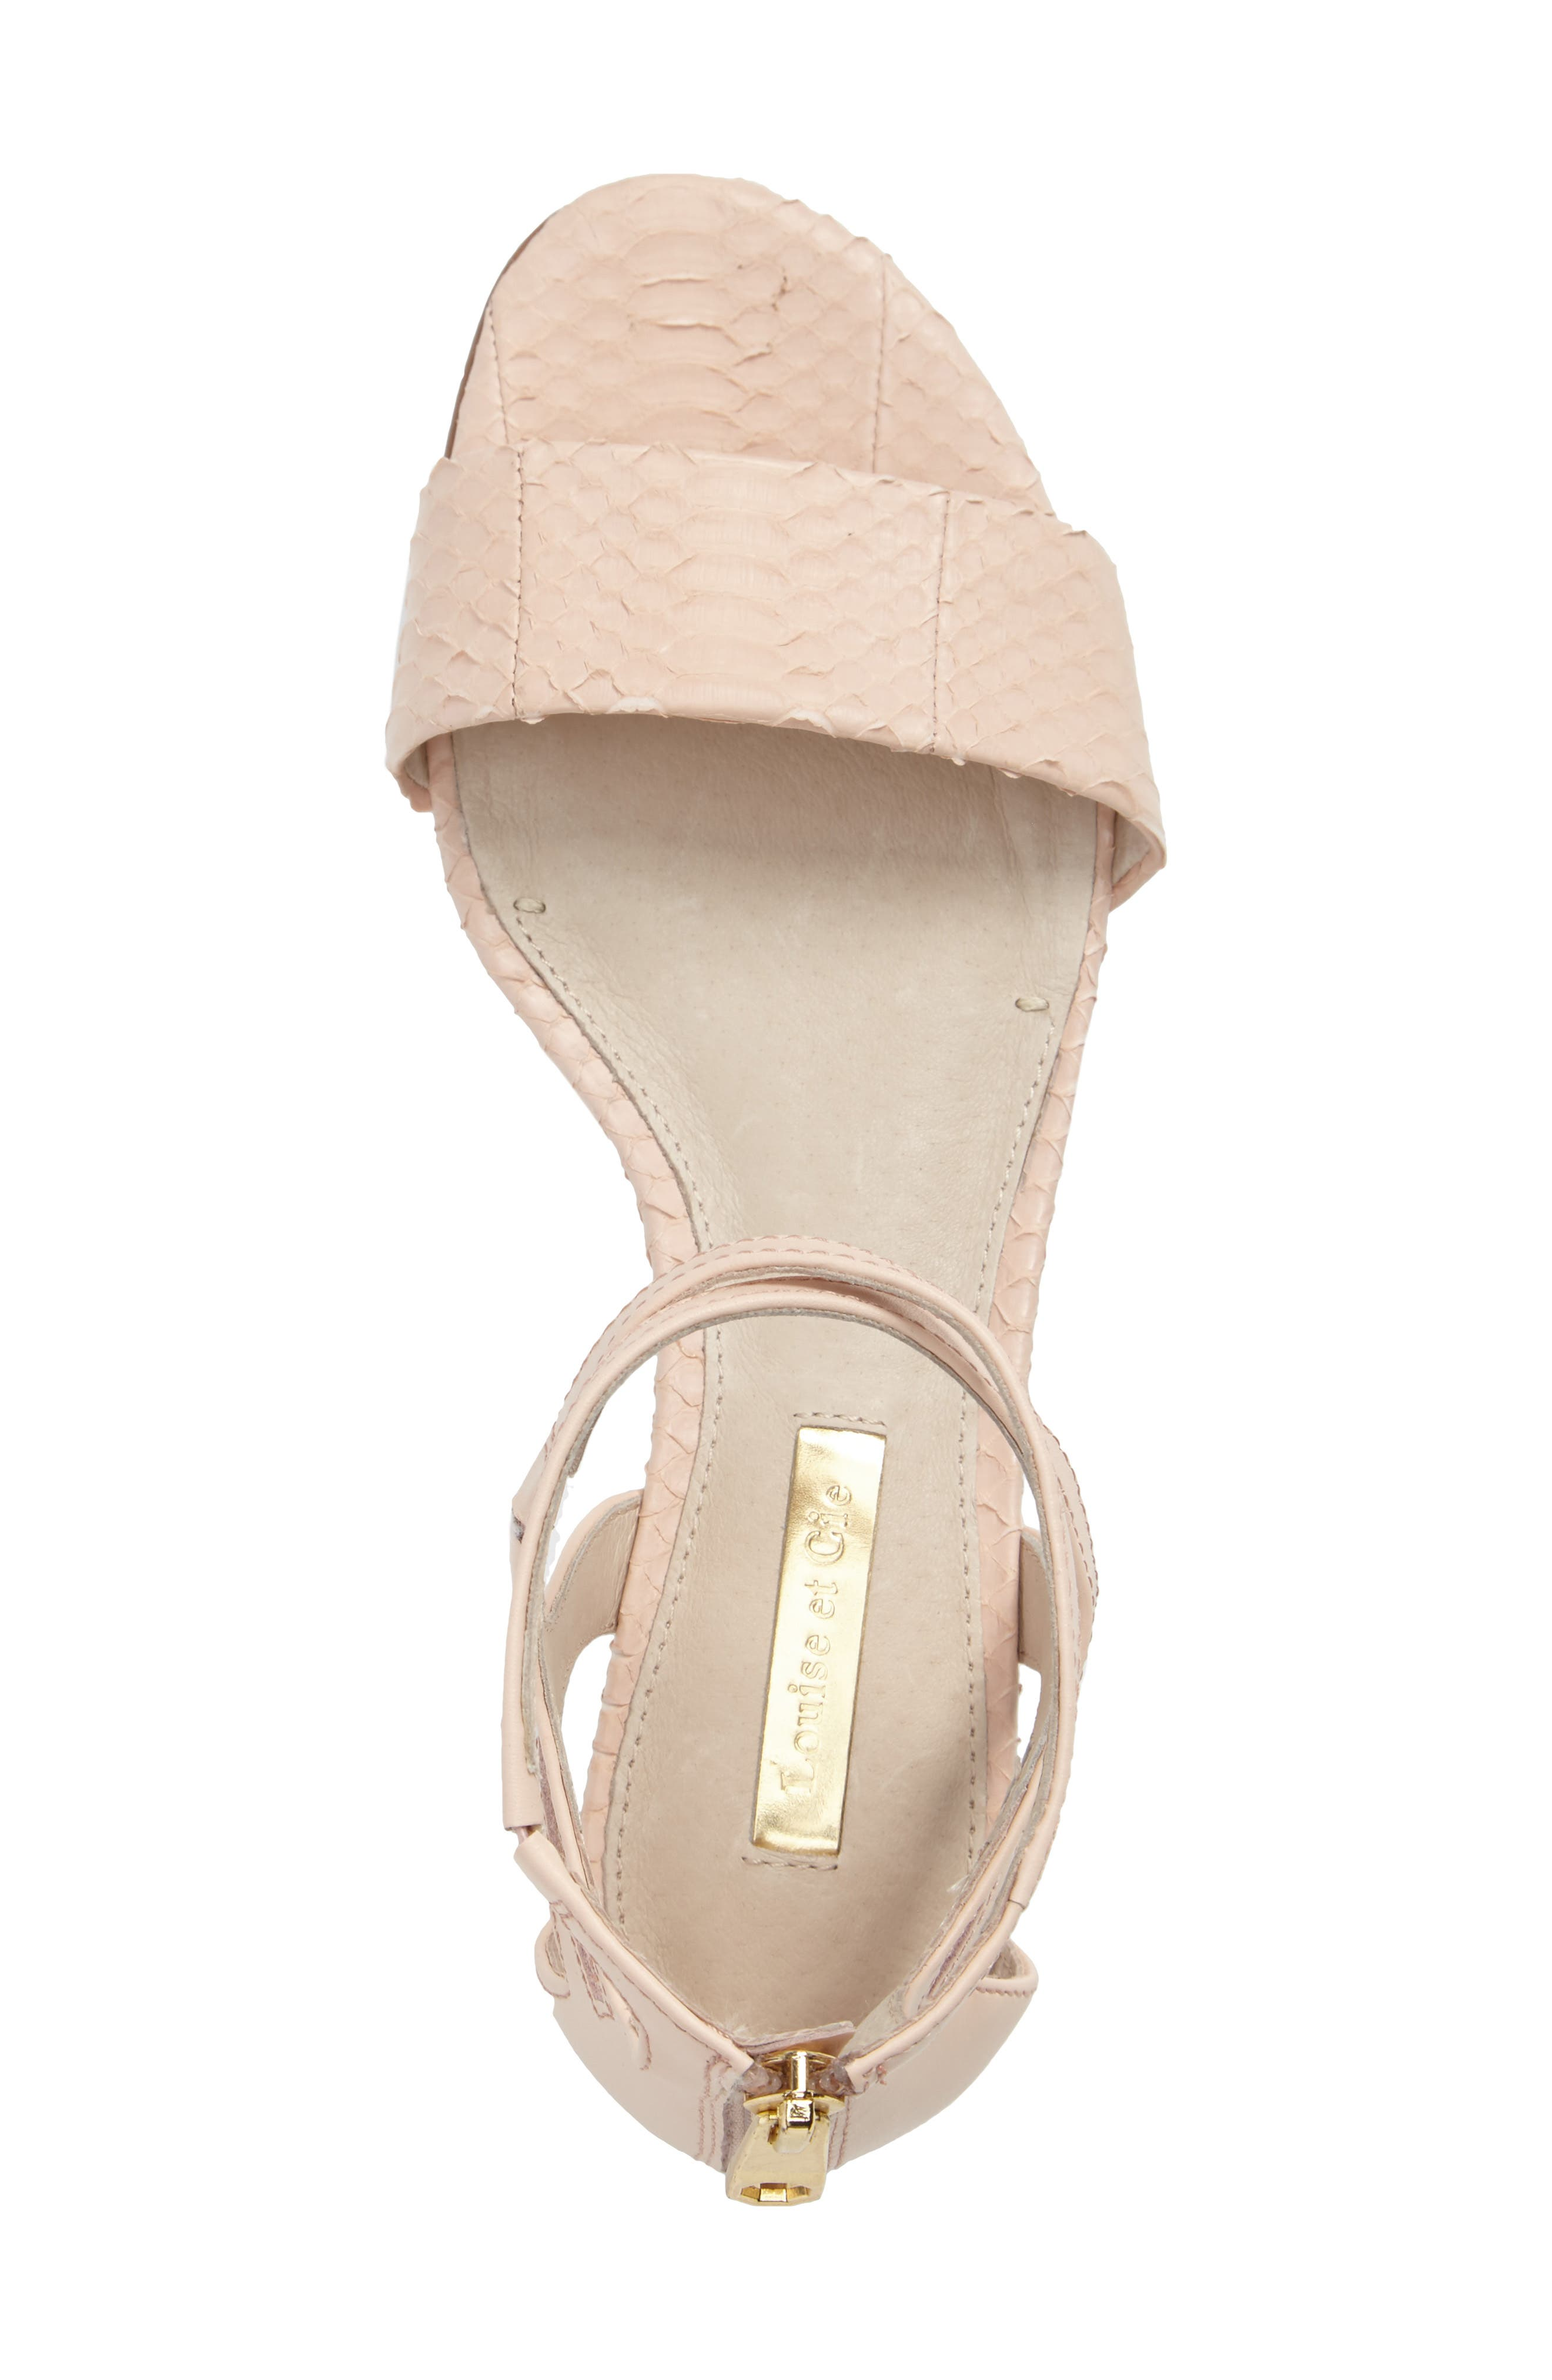 Adley Ankle Strap Sandal,                             Alternate thumbnail 3, color,                             Mimosa Leather